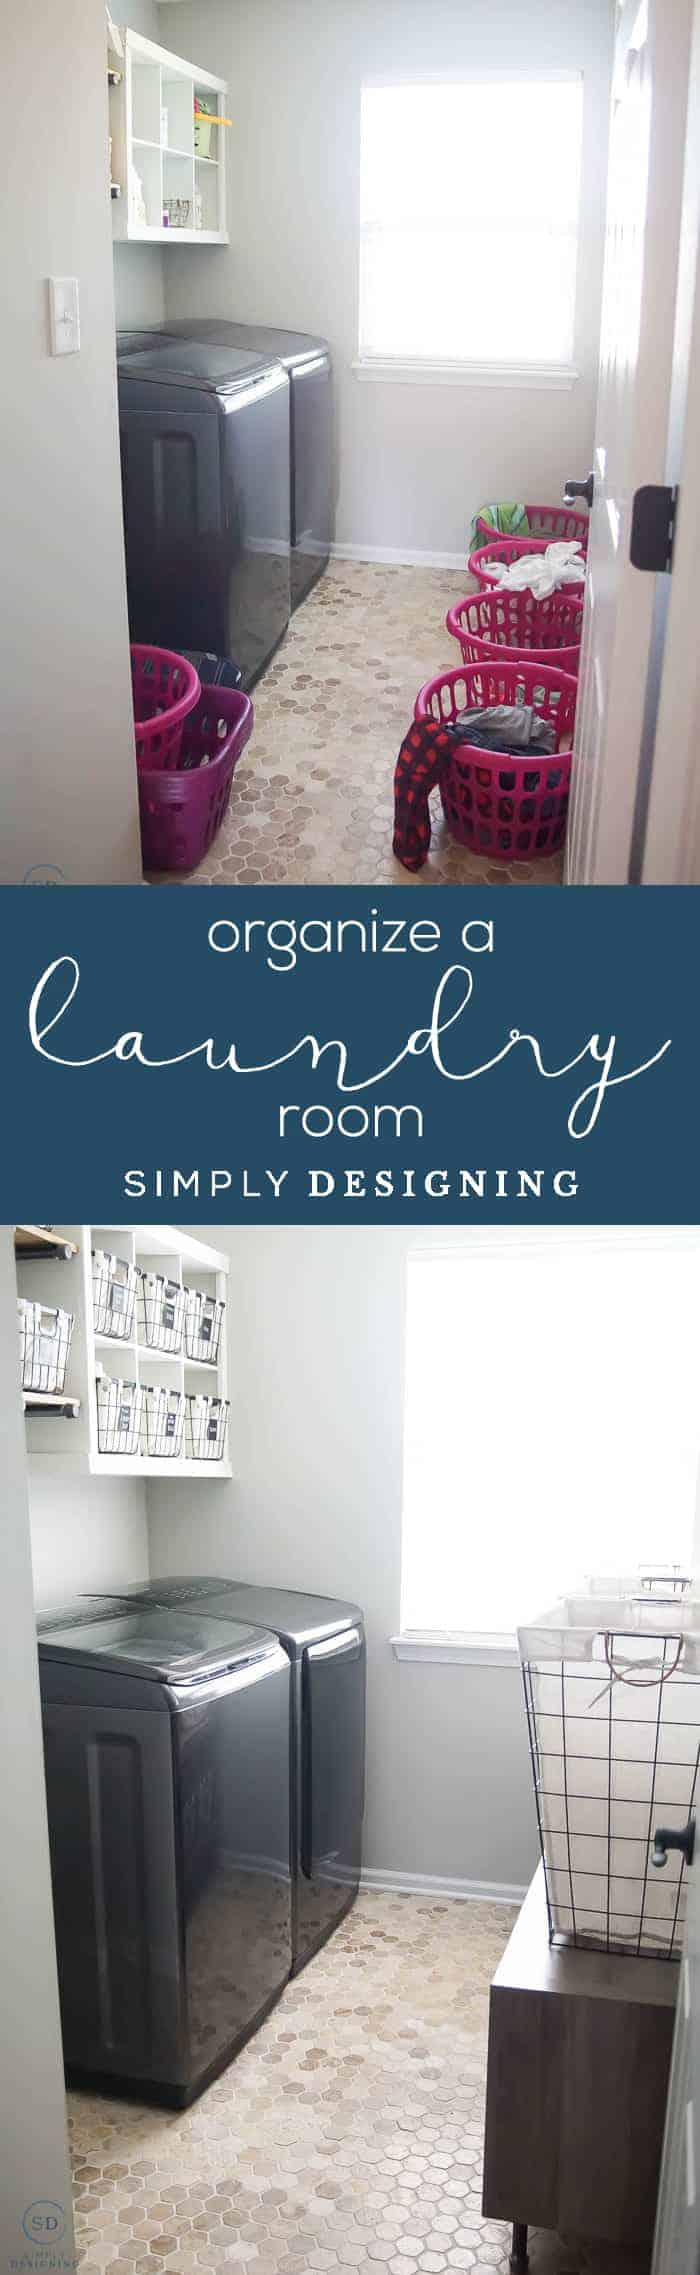 How to Organize a Laundry Room - Laundry Room Makeover - before and after